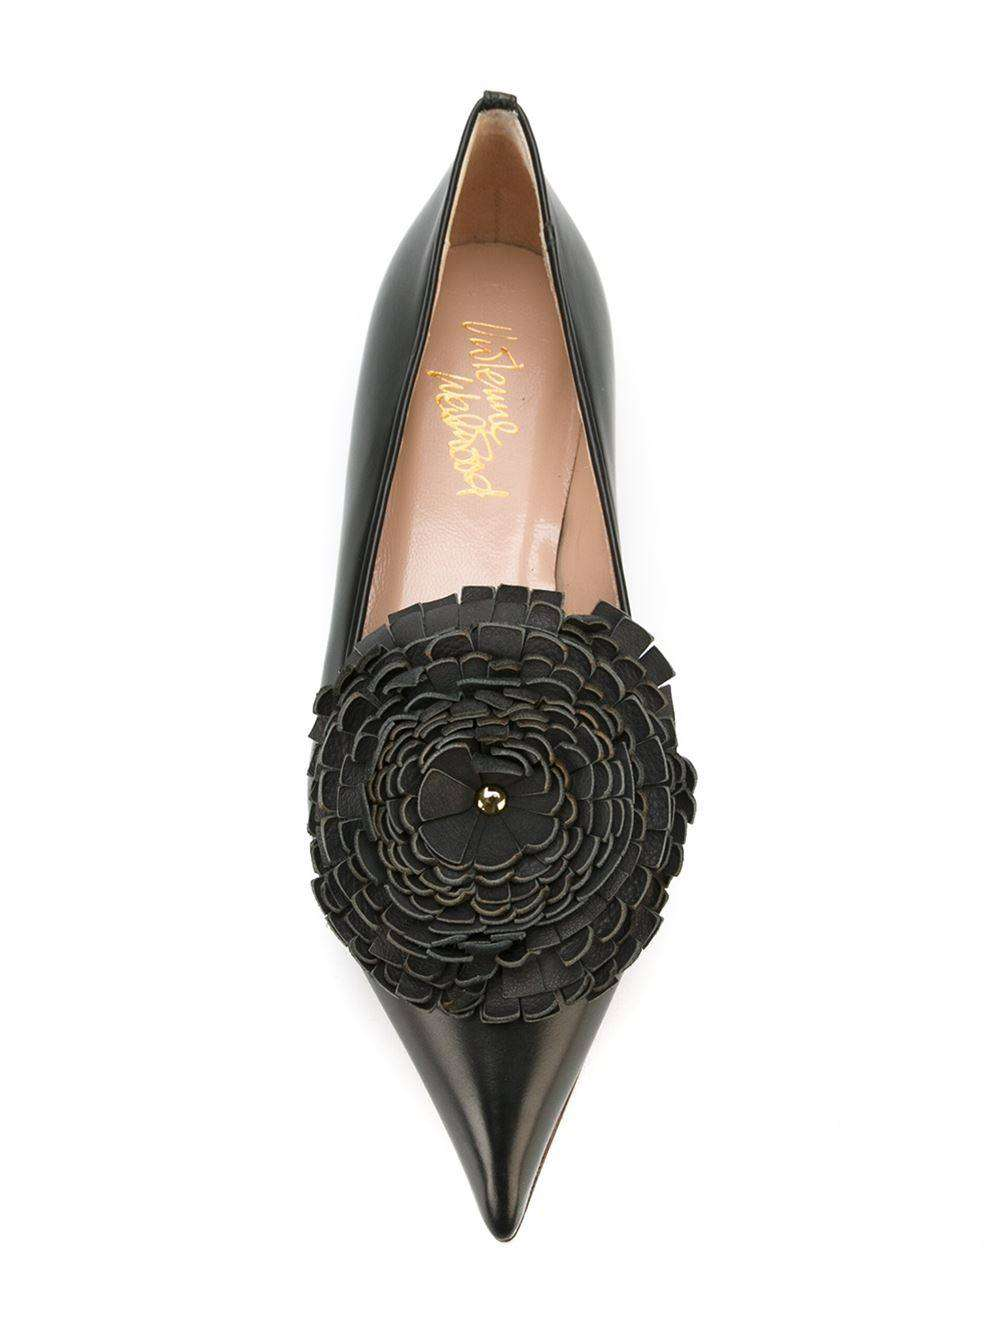 Slippers a punta nere con maxi fiore Vivienne Westwood